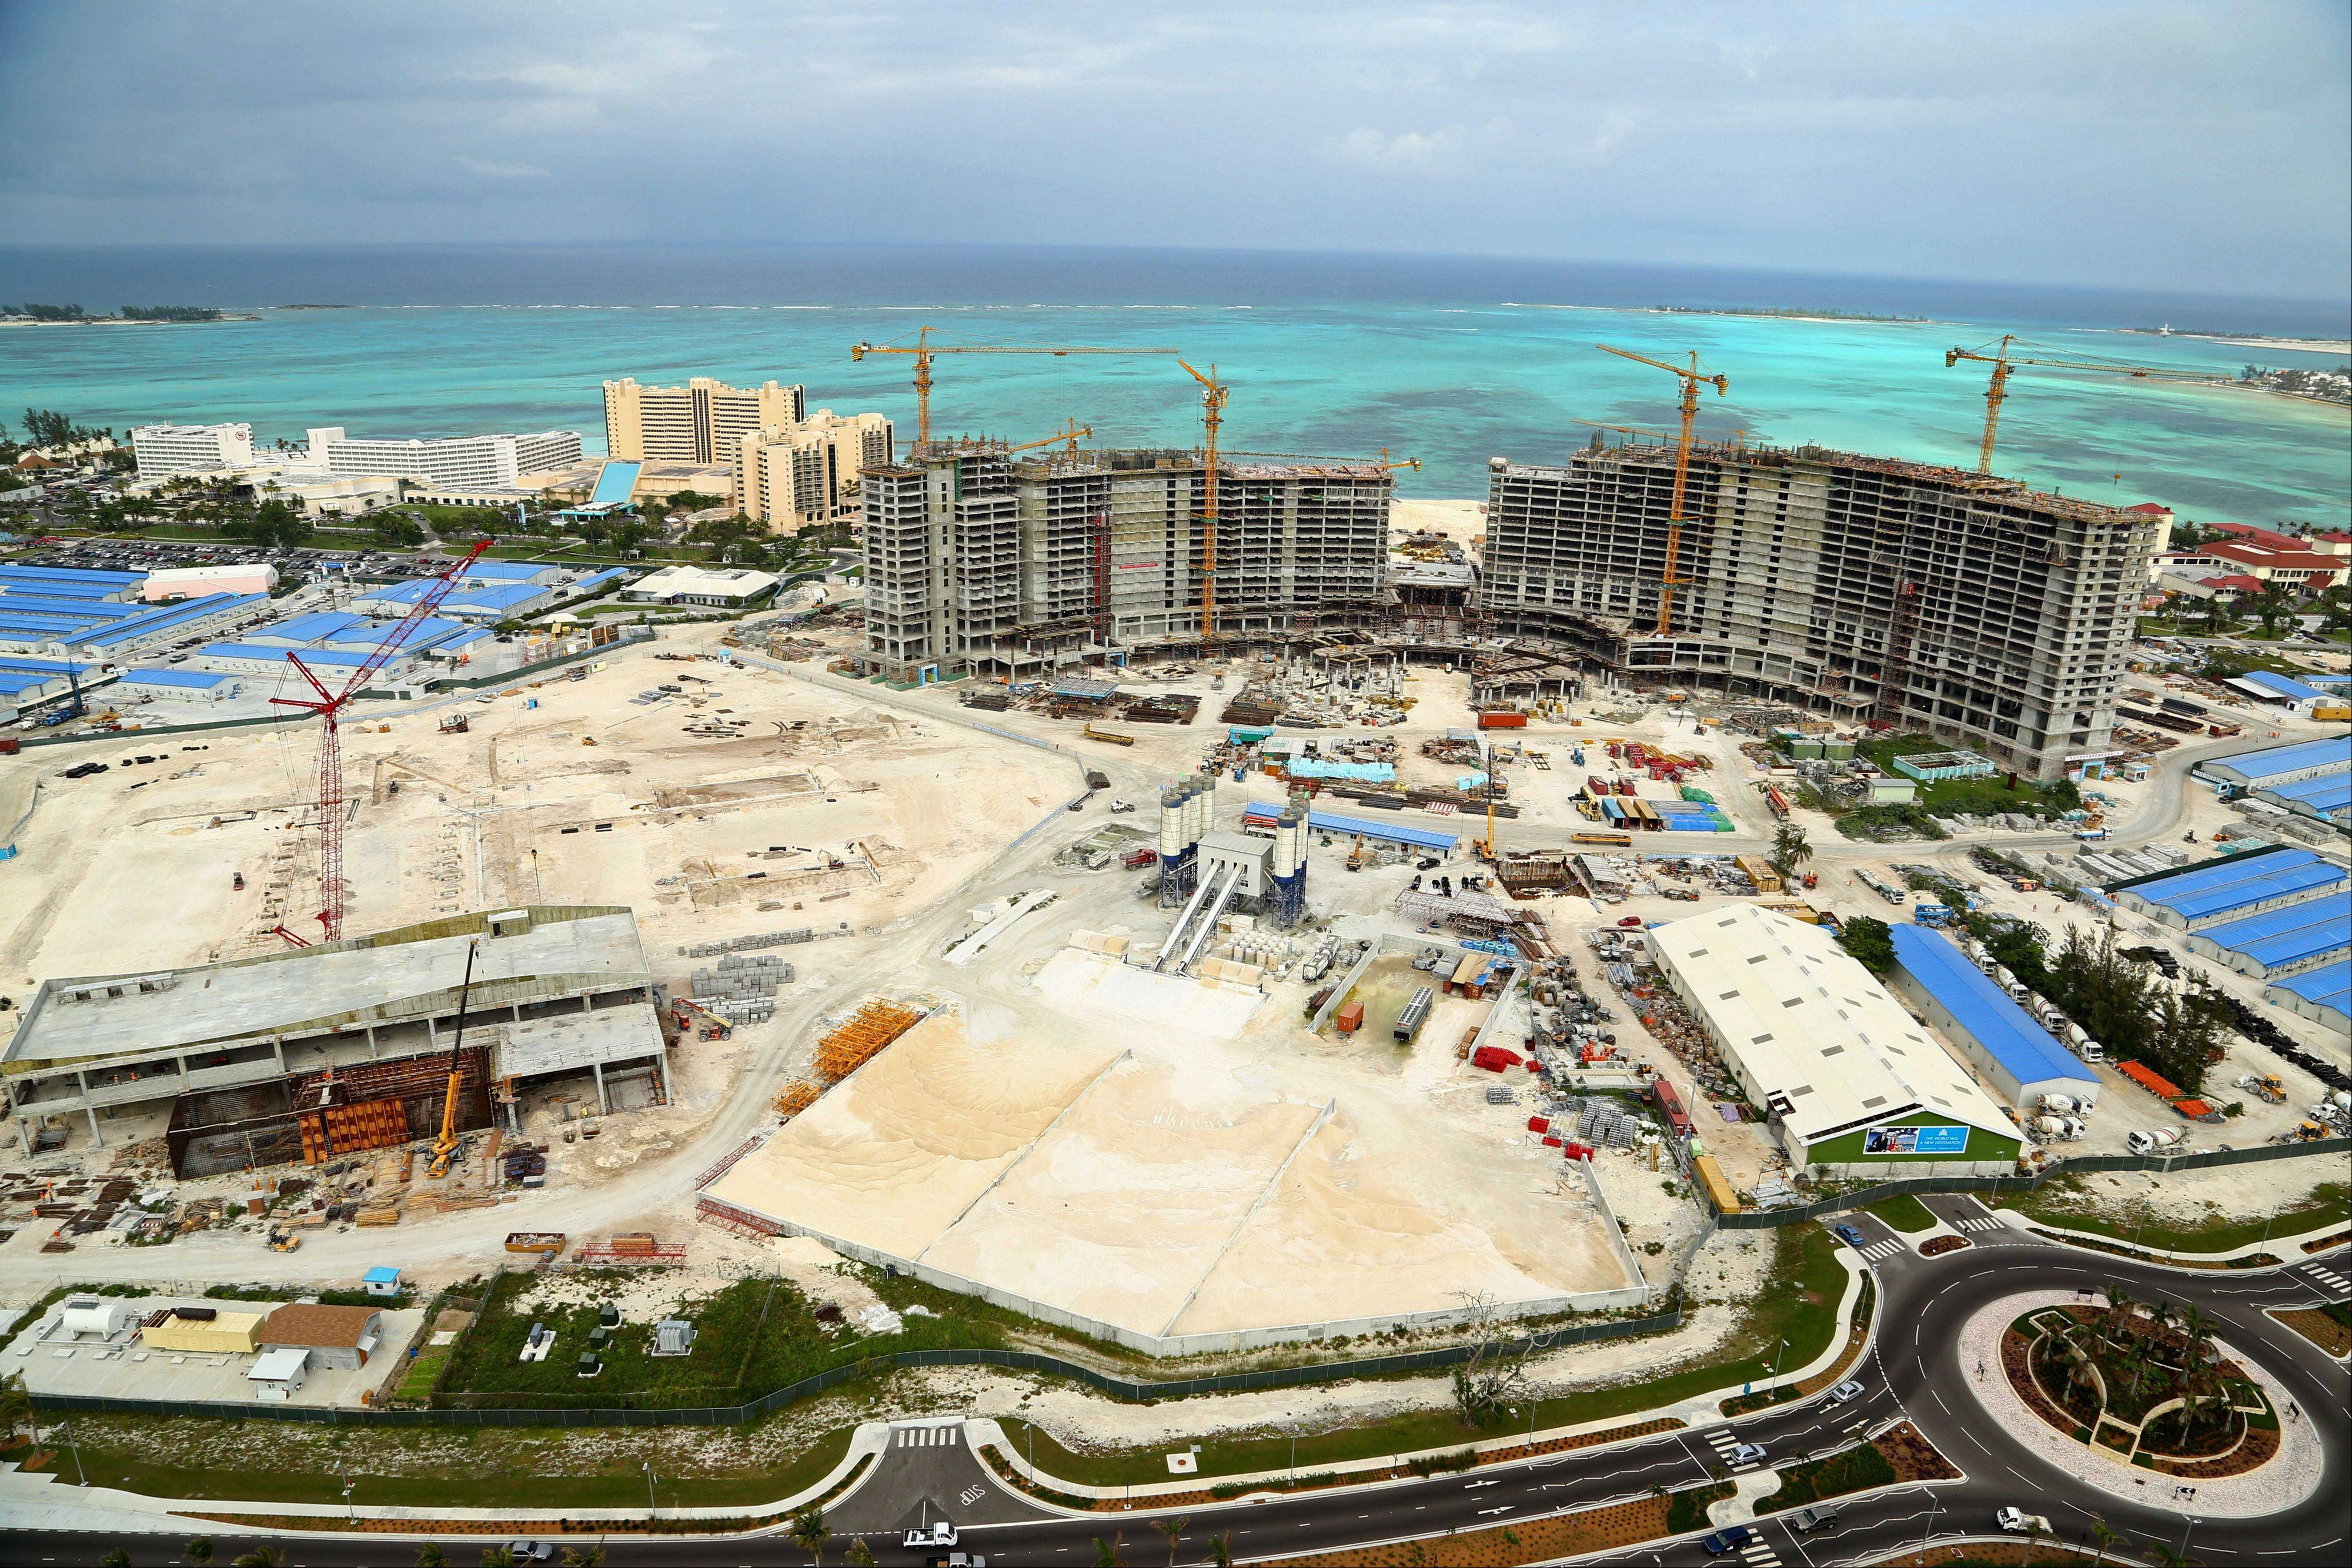 Construction continues on the Baha Mar resort on the beach on New Providence island, Bahamas. The project will add thousands of hotel rooms not far from the islands� biggest resort, the Atlantis. Baha Mar has opened sales offices all over Asia to promote and presell hundreds of pricey condos, hoping to imprint new travel habits on a continent that�s traditionally spent beach vacations in Southeast Asia. It is also working with the Bahamian government to open more consular offices in China to issue visas.